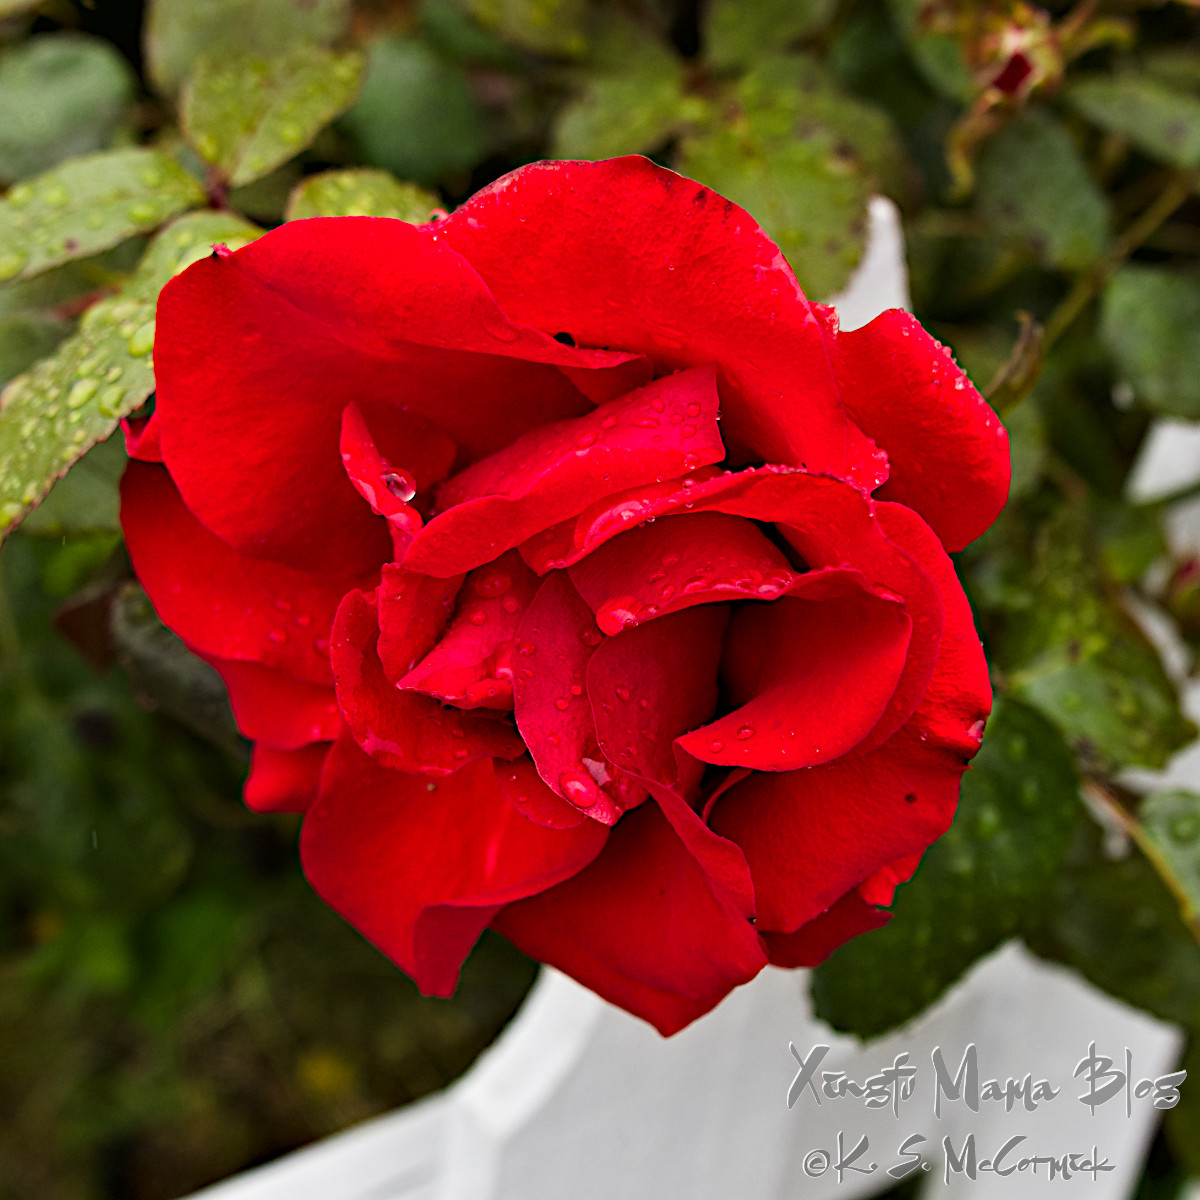 A single red rose with raindrops.